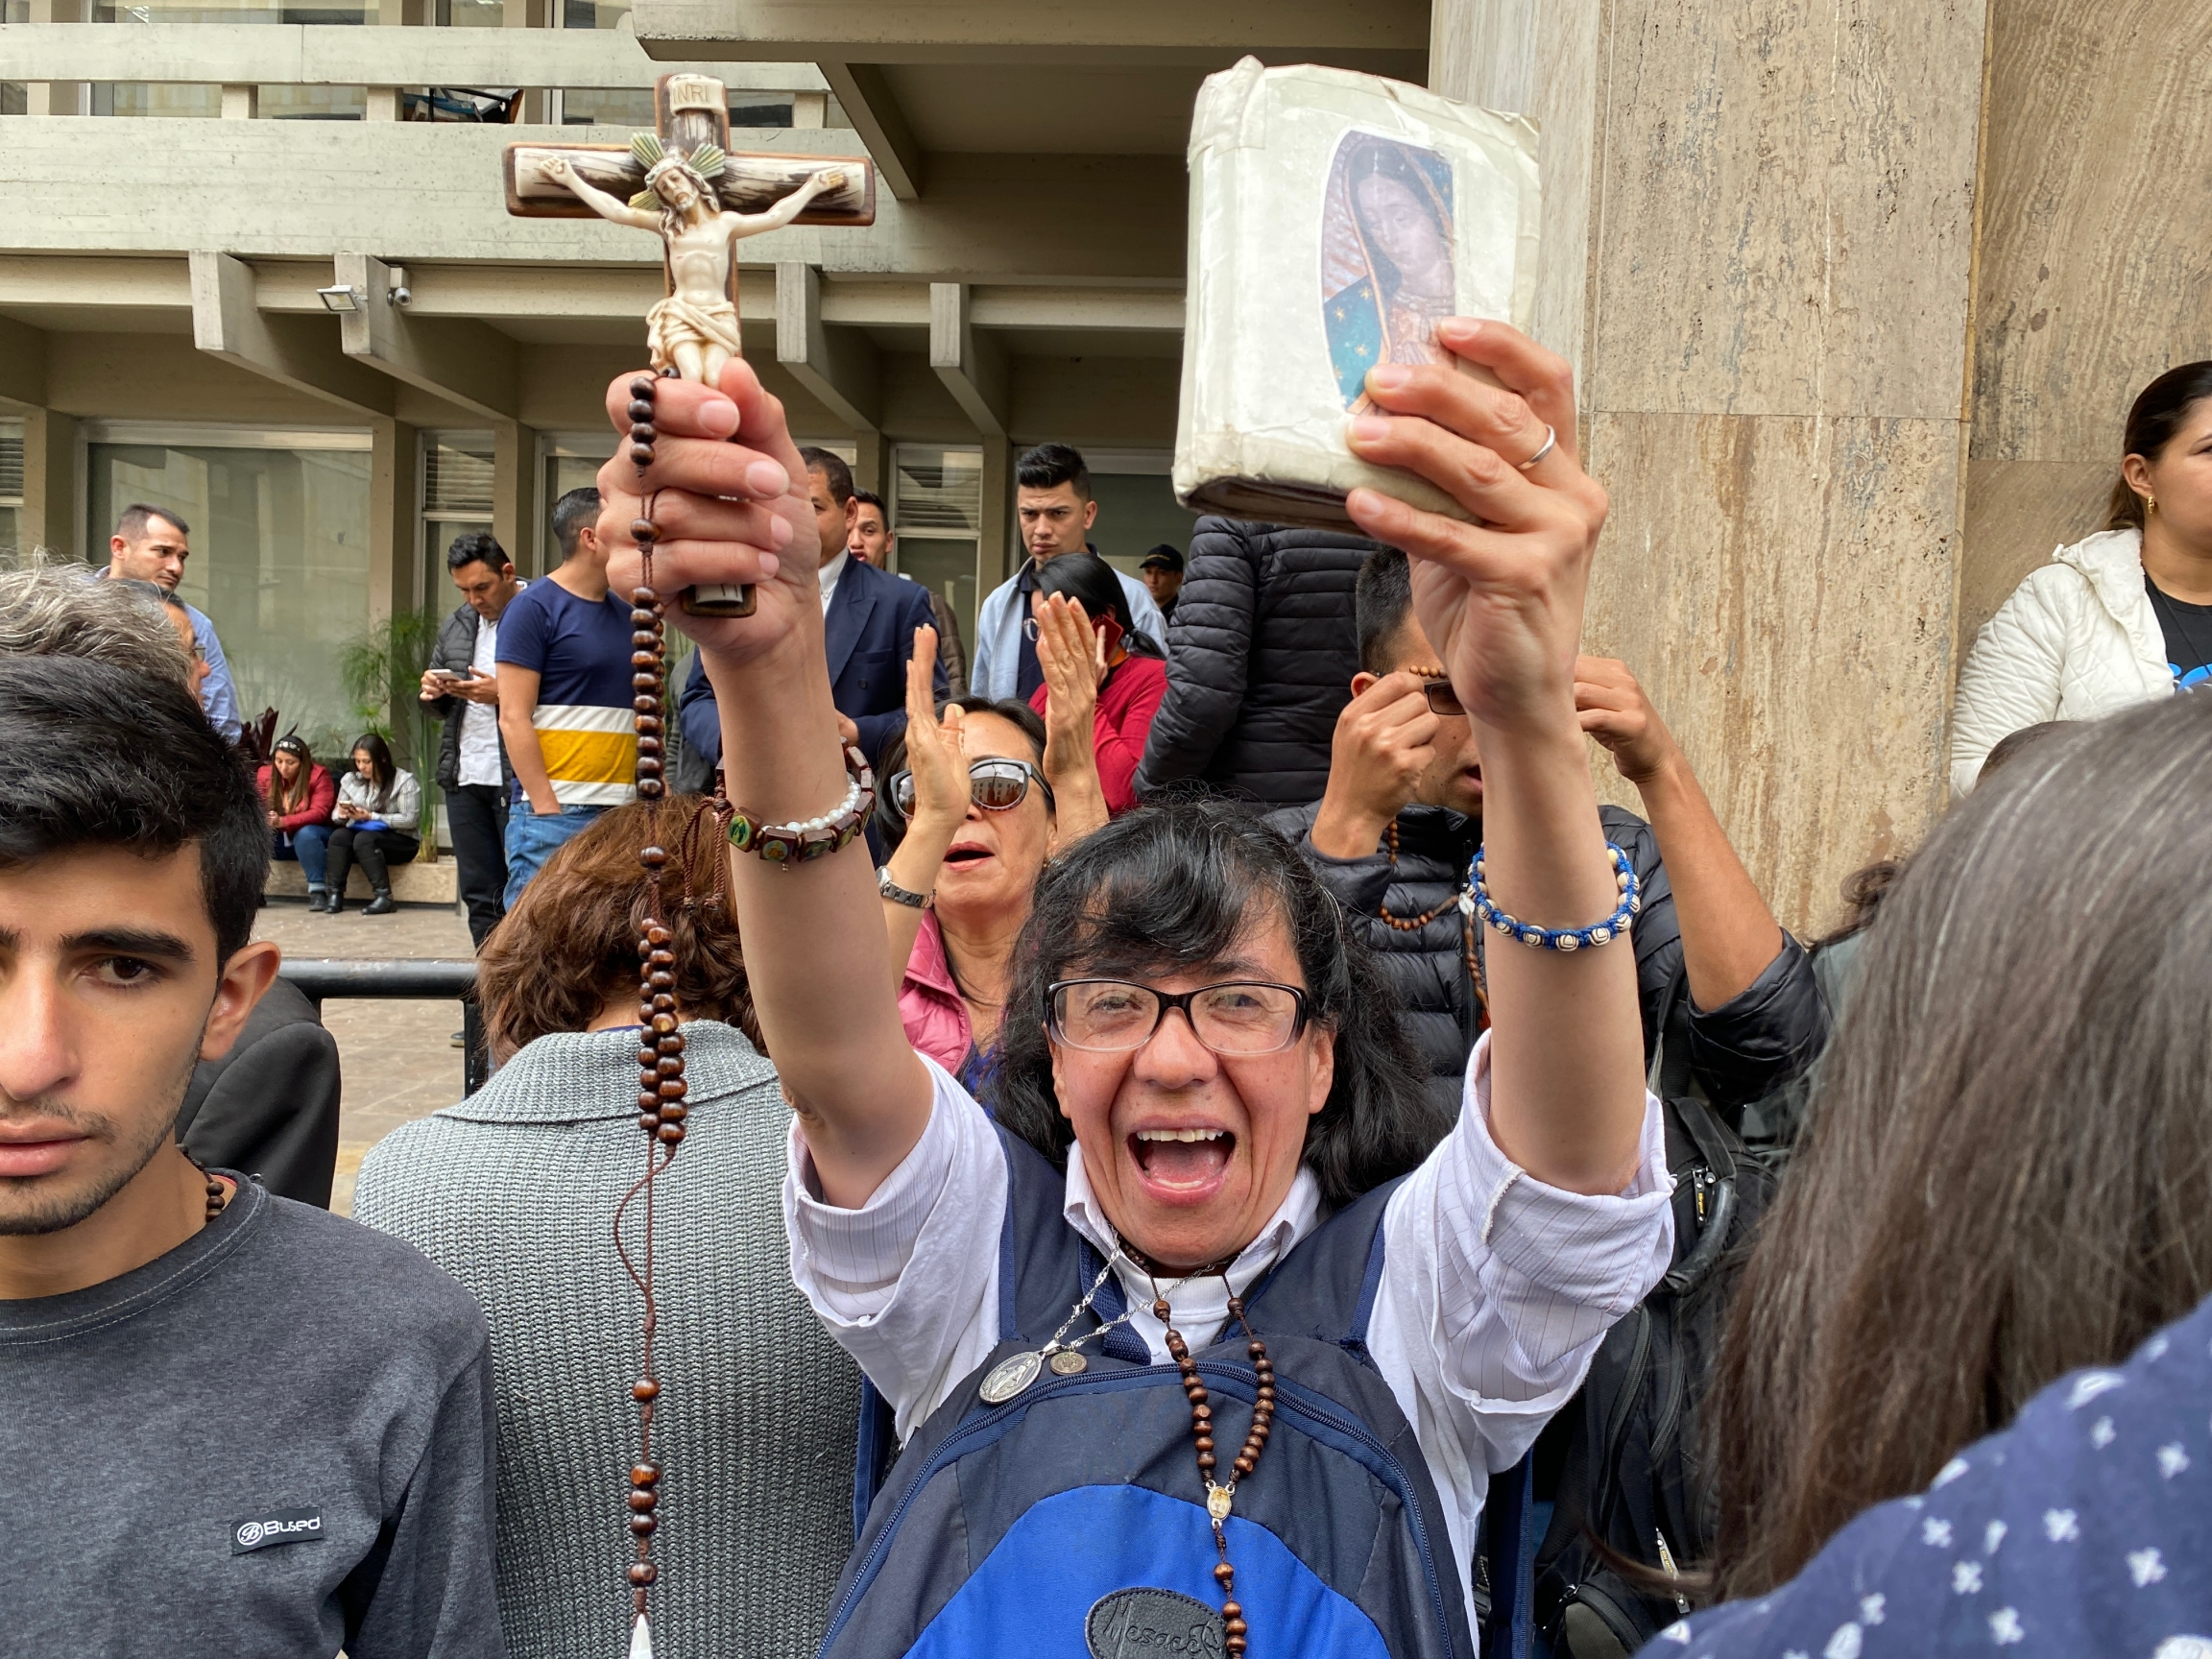 A demonstrator displays her bible and crucifix during a protest outside Colombia's constitutional court.